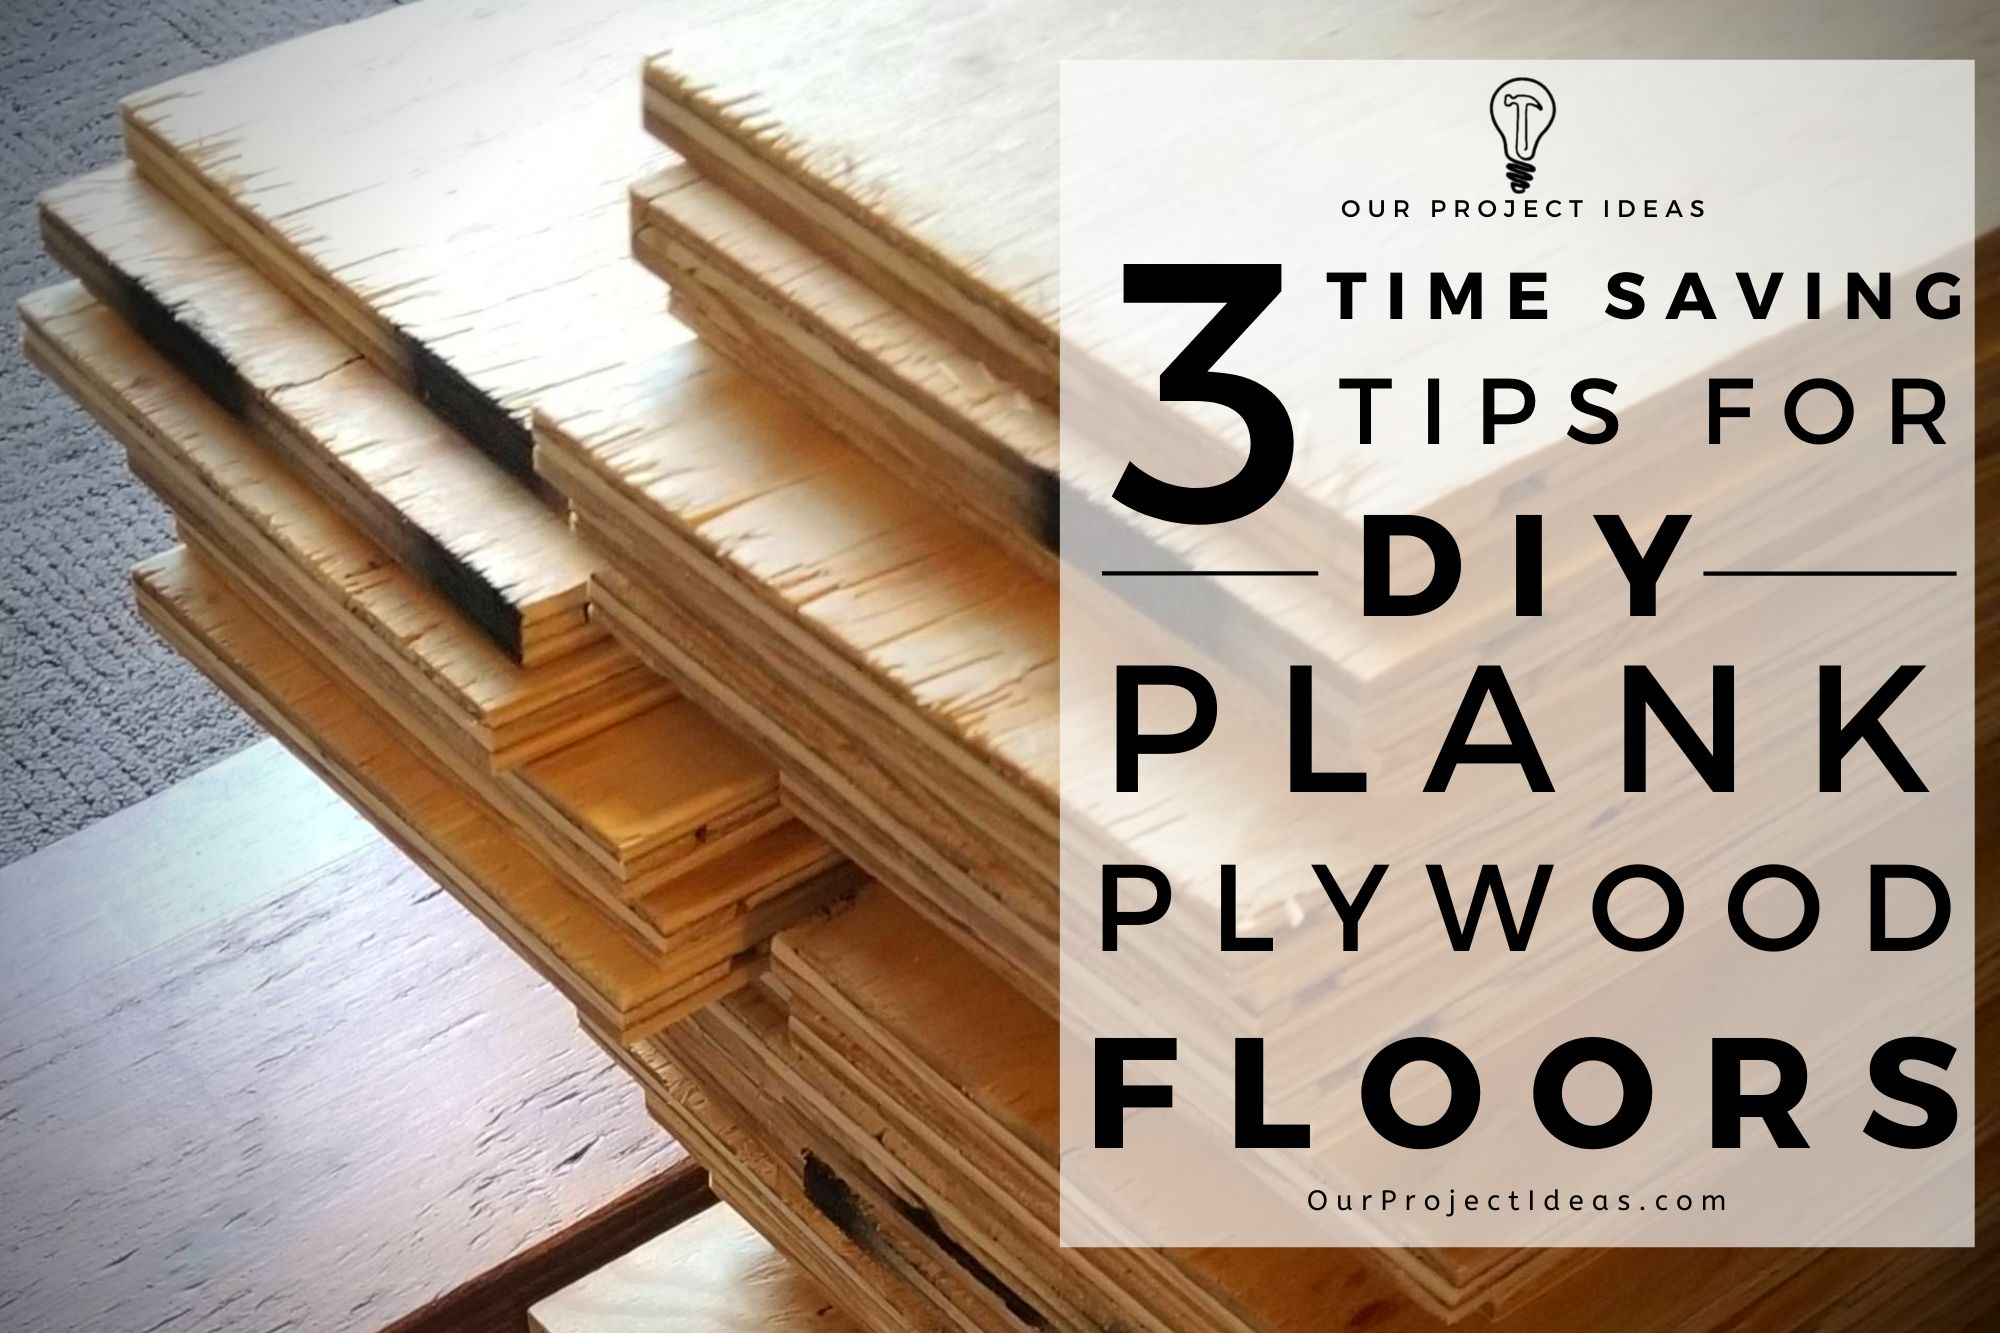 3 Time Saving Tips for DIY Plank Plywood Floors